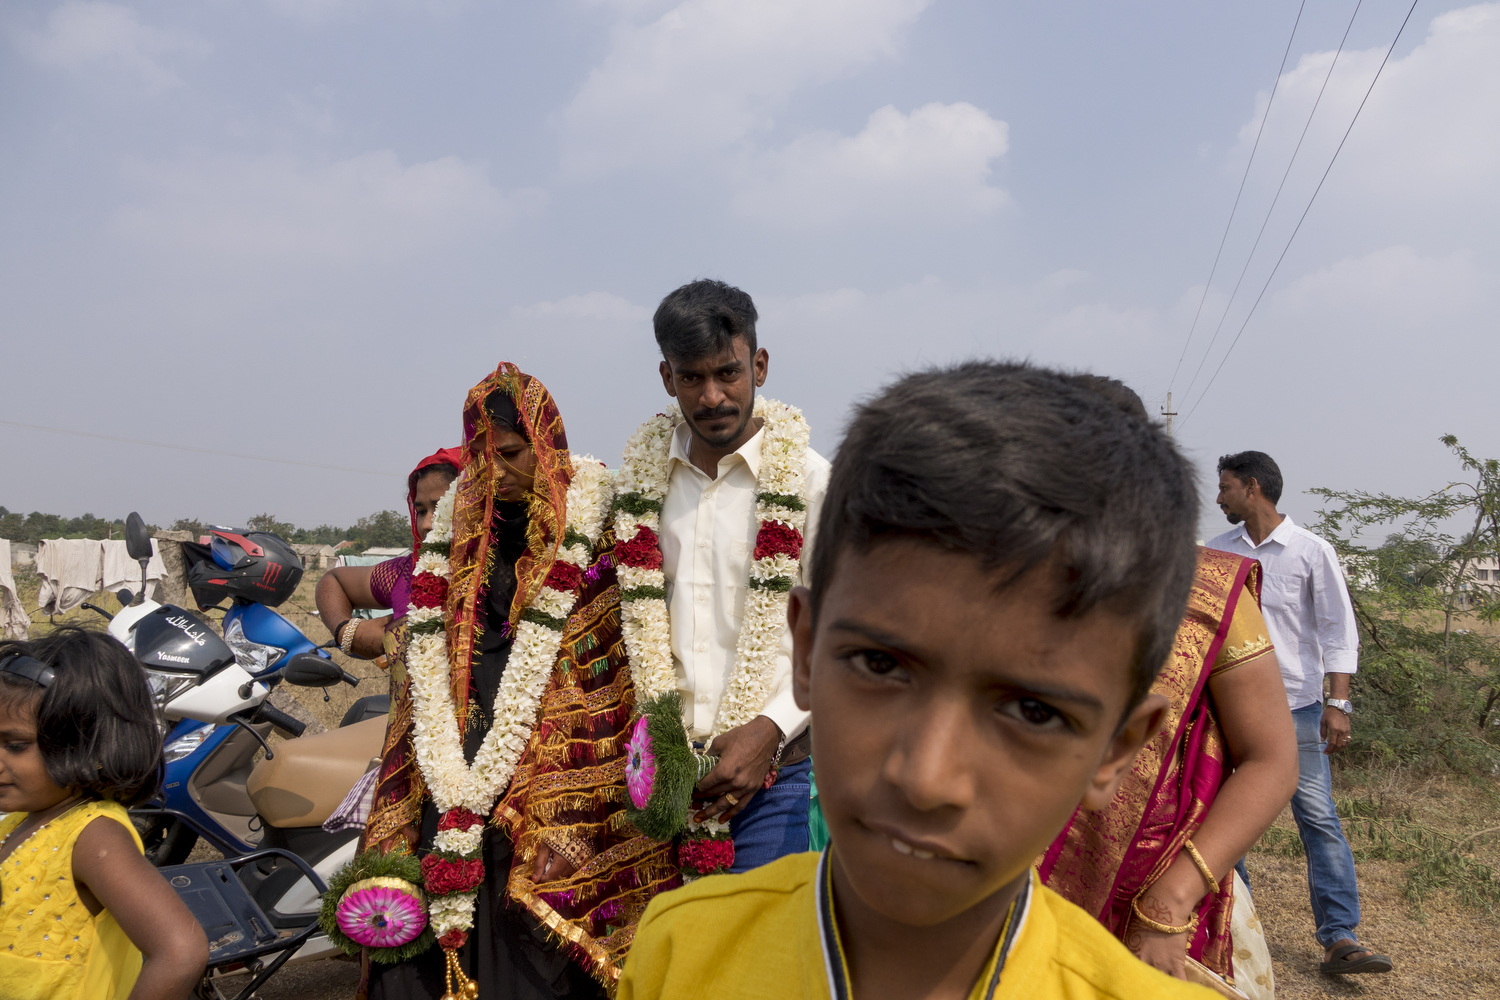 The man and the girl were married in January in Anna Nagar. It was a Muslim wedding. After marrying in the mosque, the bride and groom go back to their homes to celebrate with their relatives and a feast.  Harish Kumar. R .